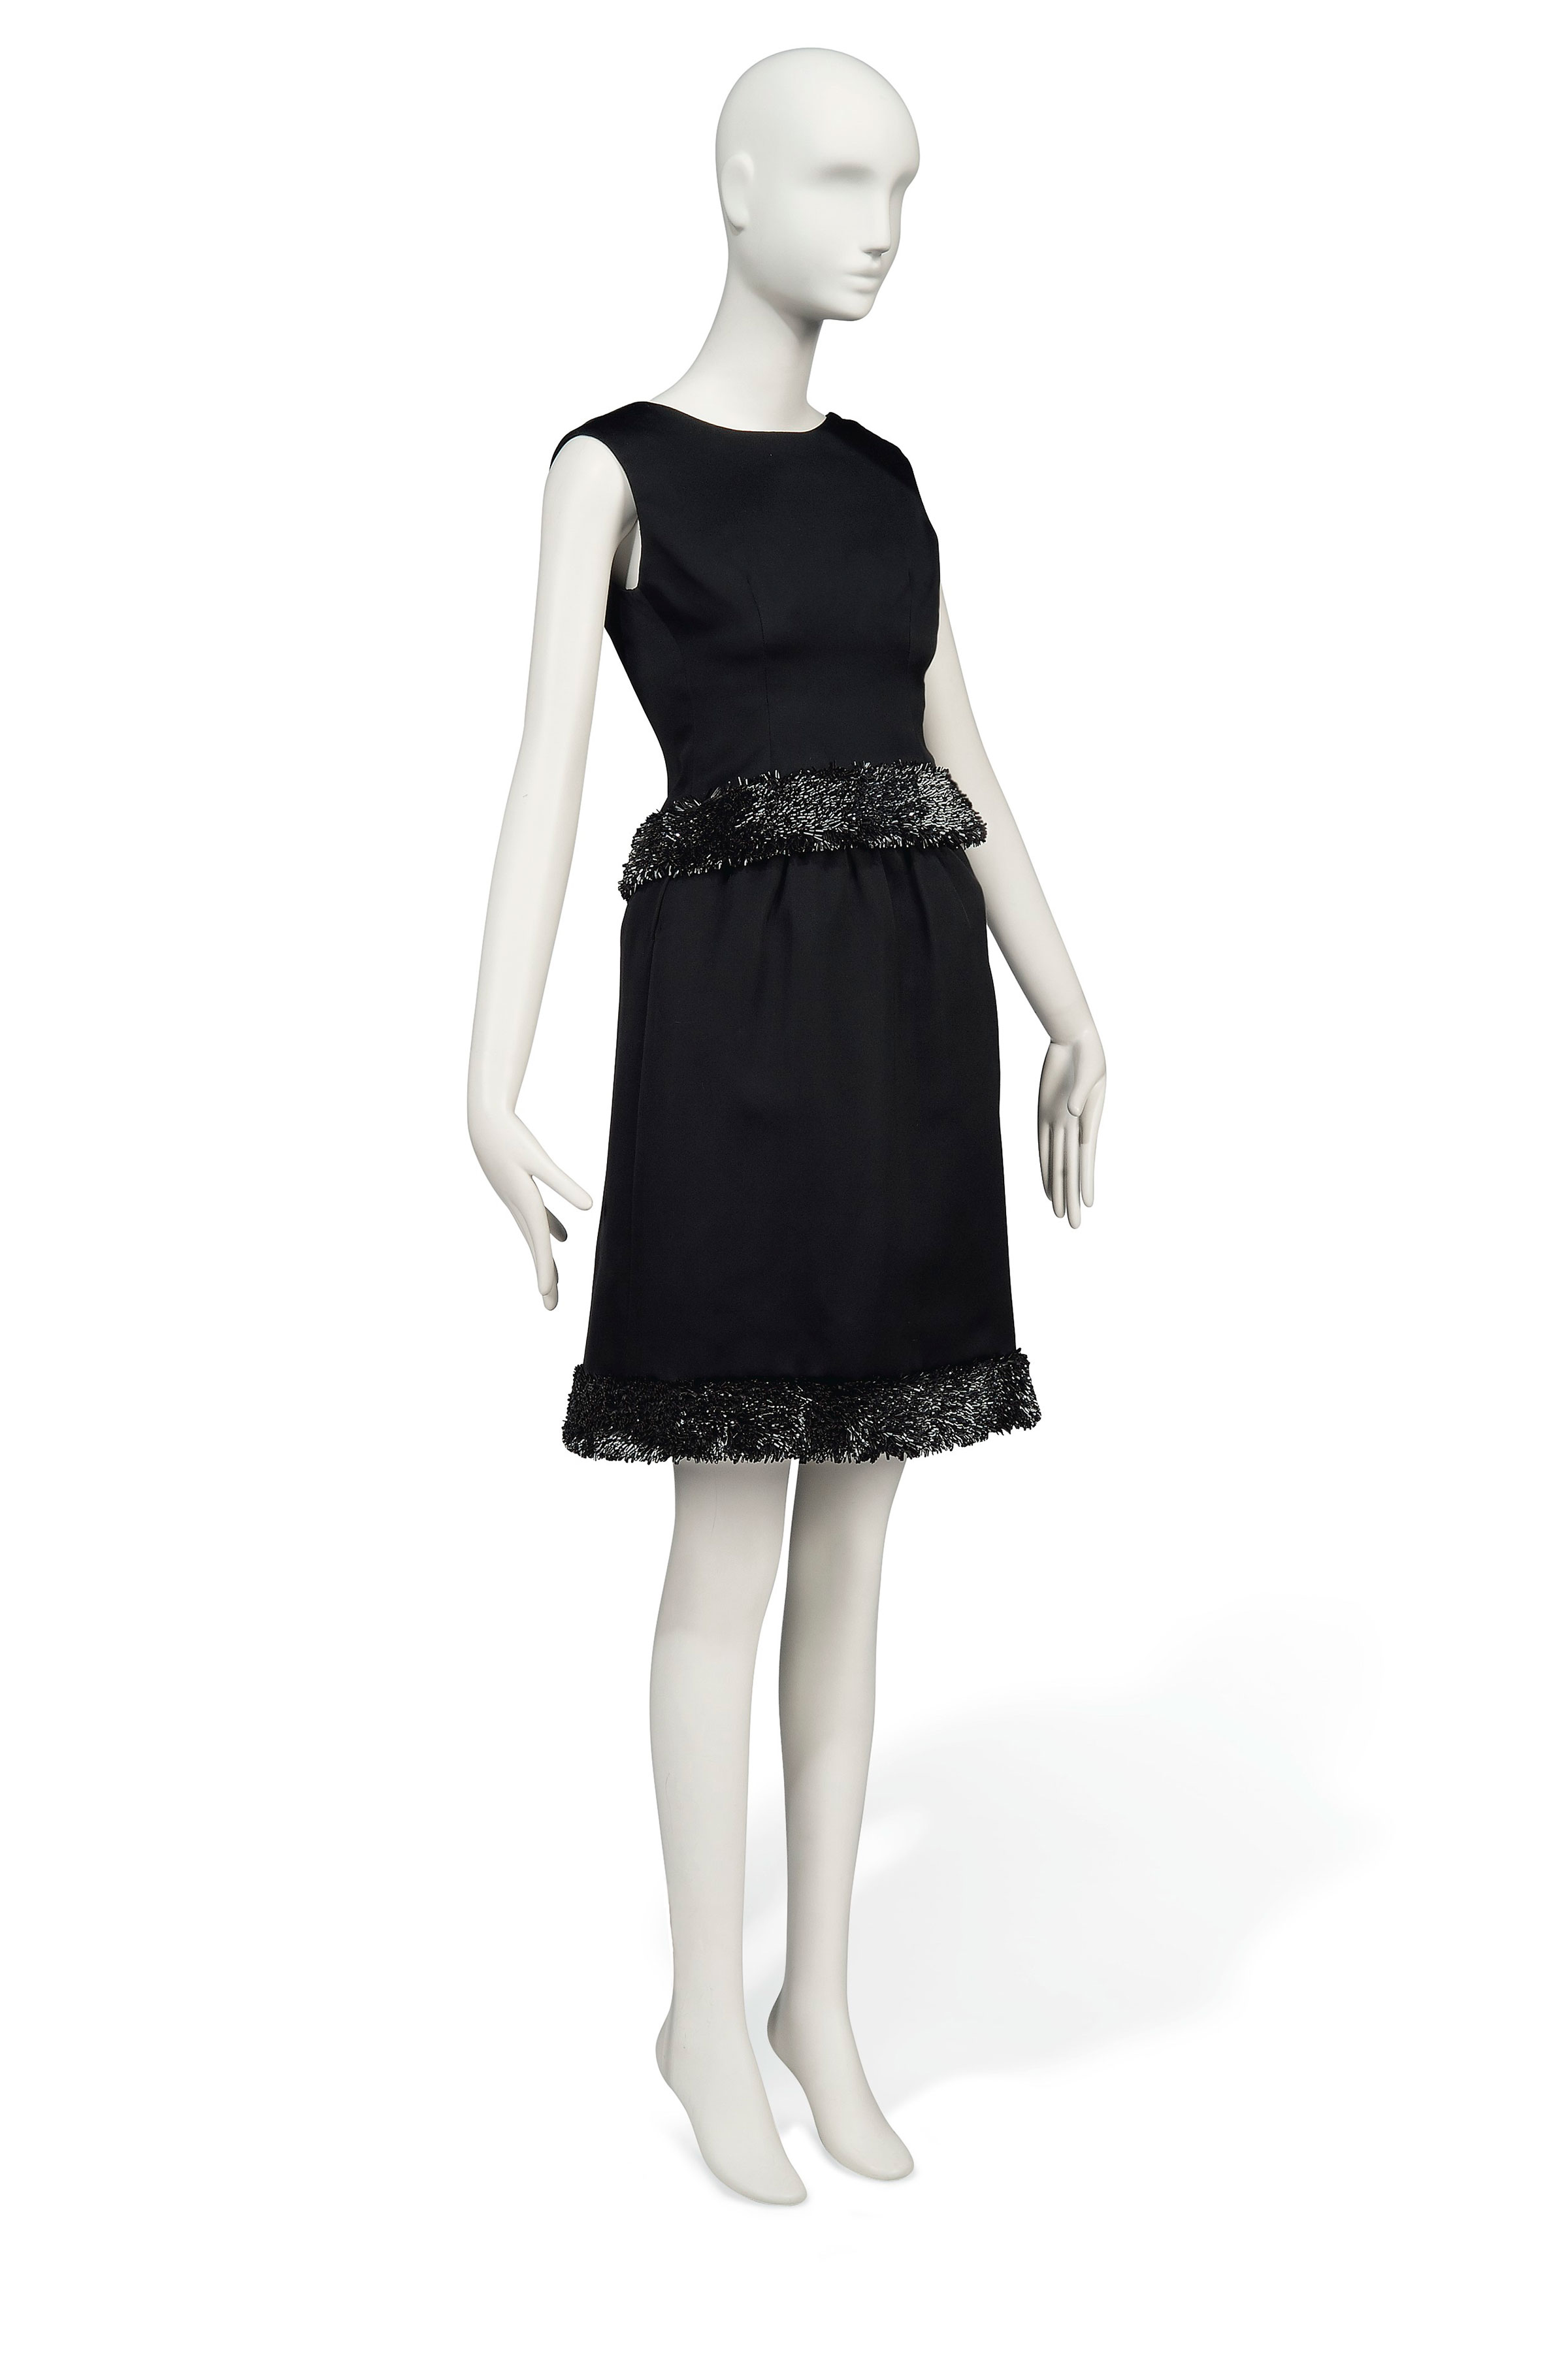 Audrey hepburns little black dress hawked off at auction - 2019 year